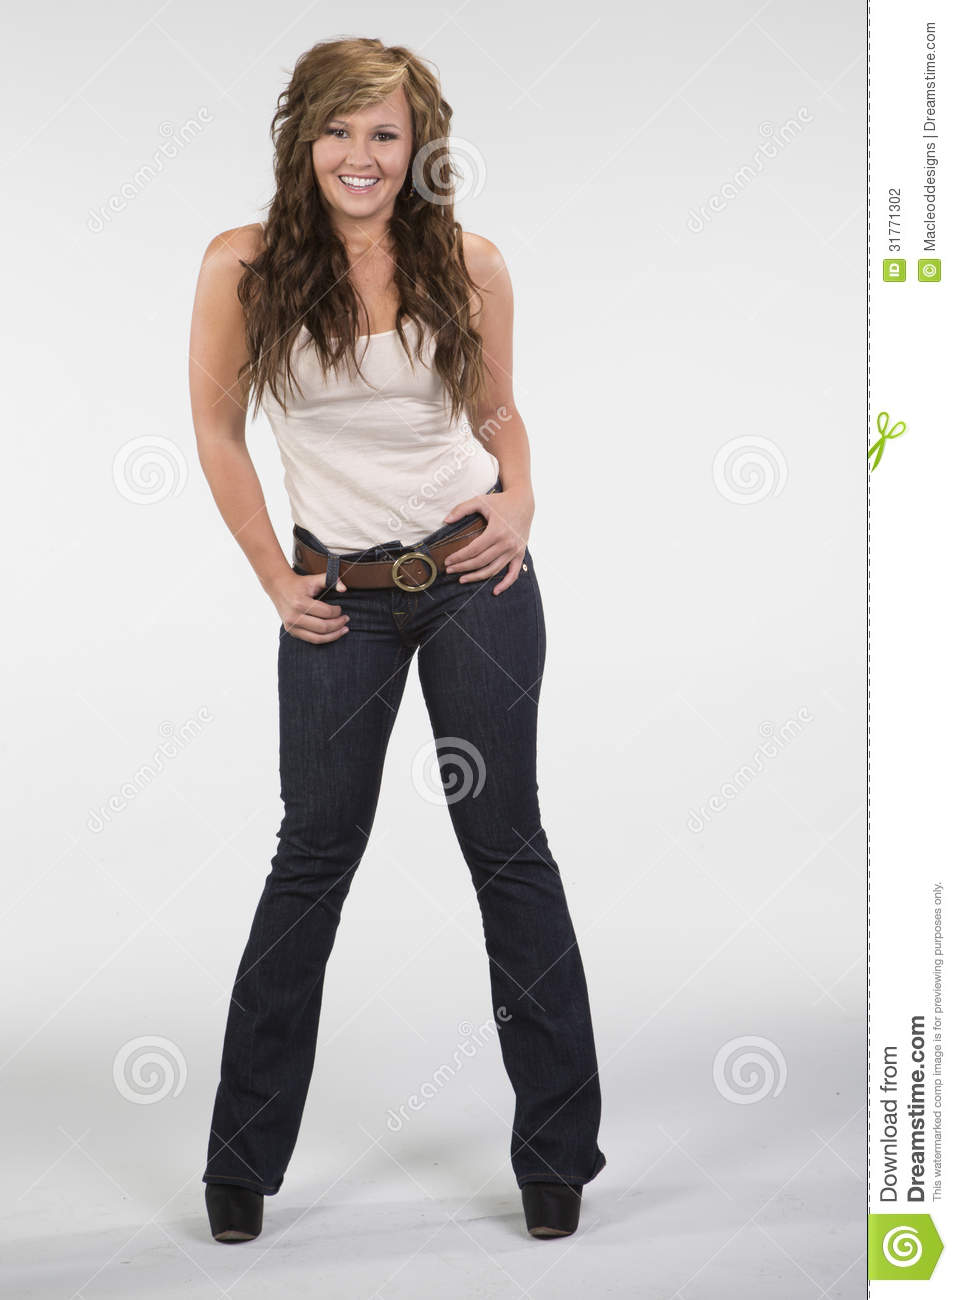 Beautiful Girl Smiling In Tan Shirt And Jeans Stock